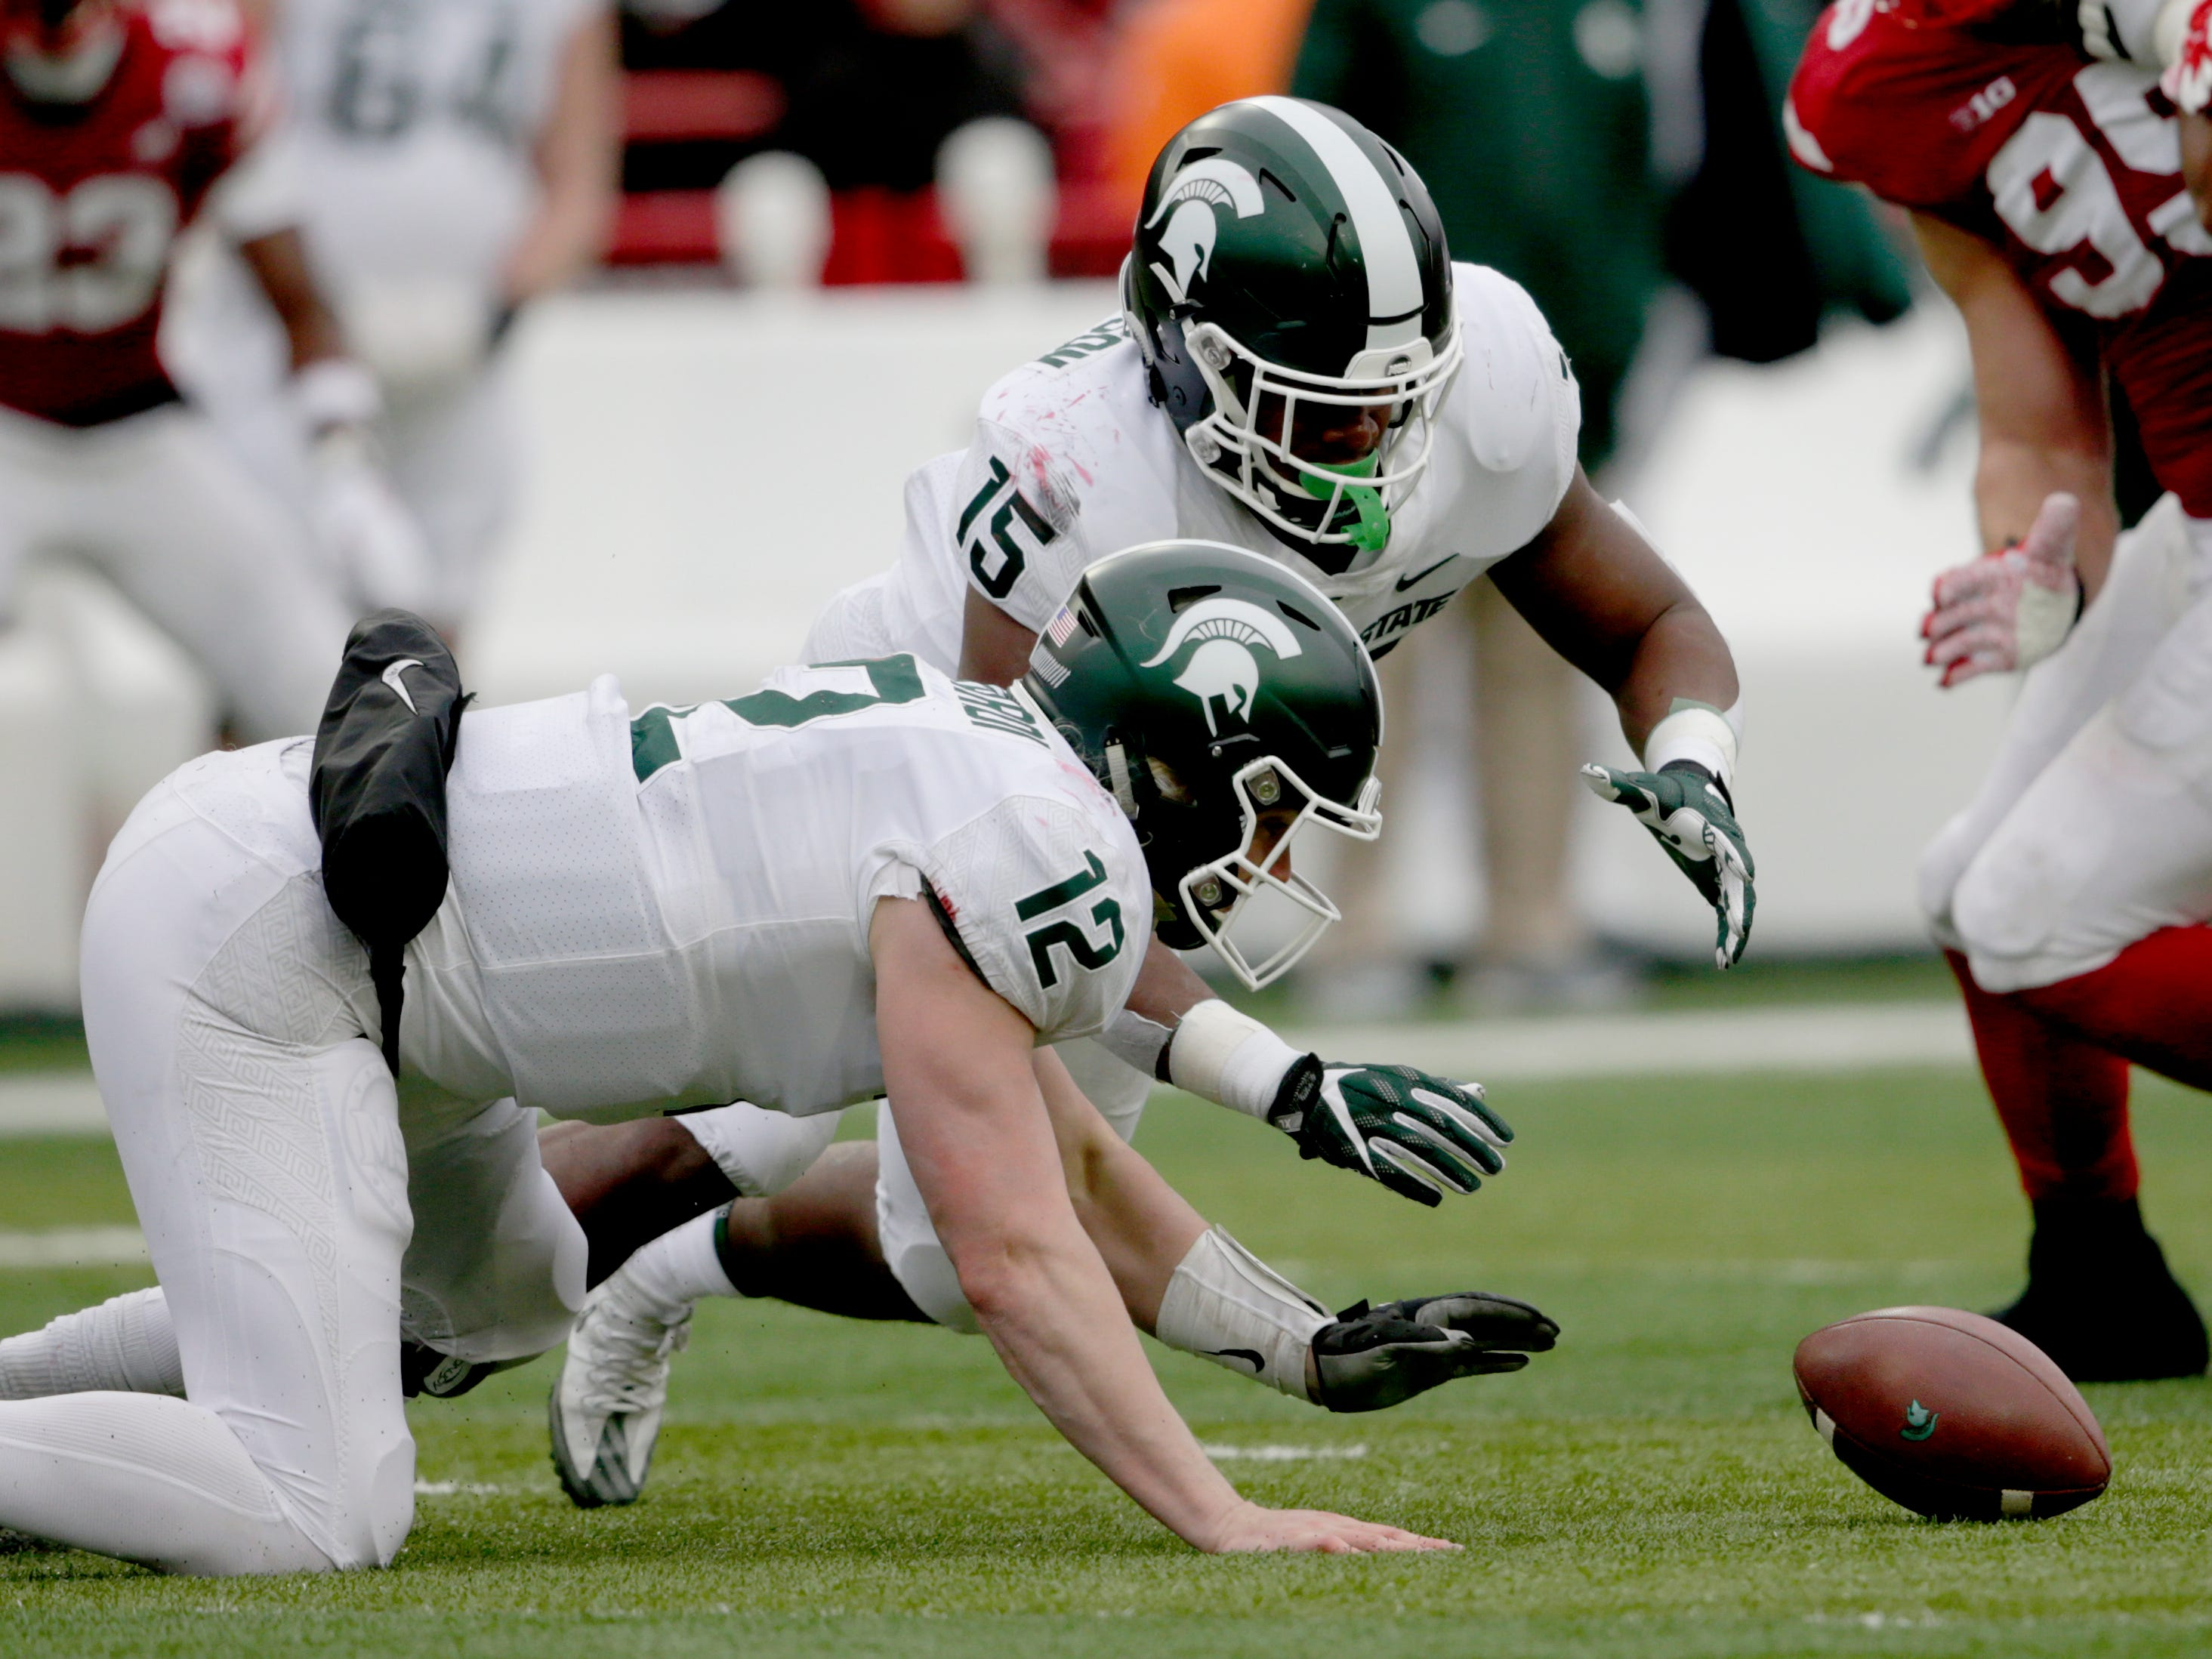 8. Michigan State (6-5) | Last game: Lost to Nebraska, 9-6 | Previous ranking: 6